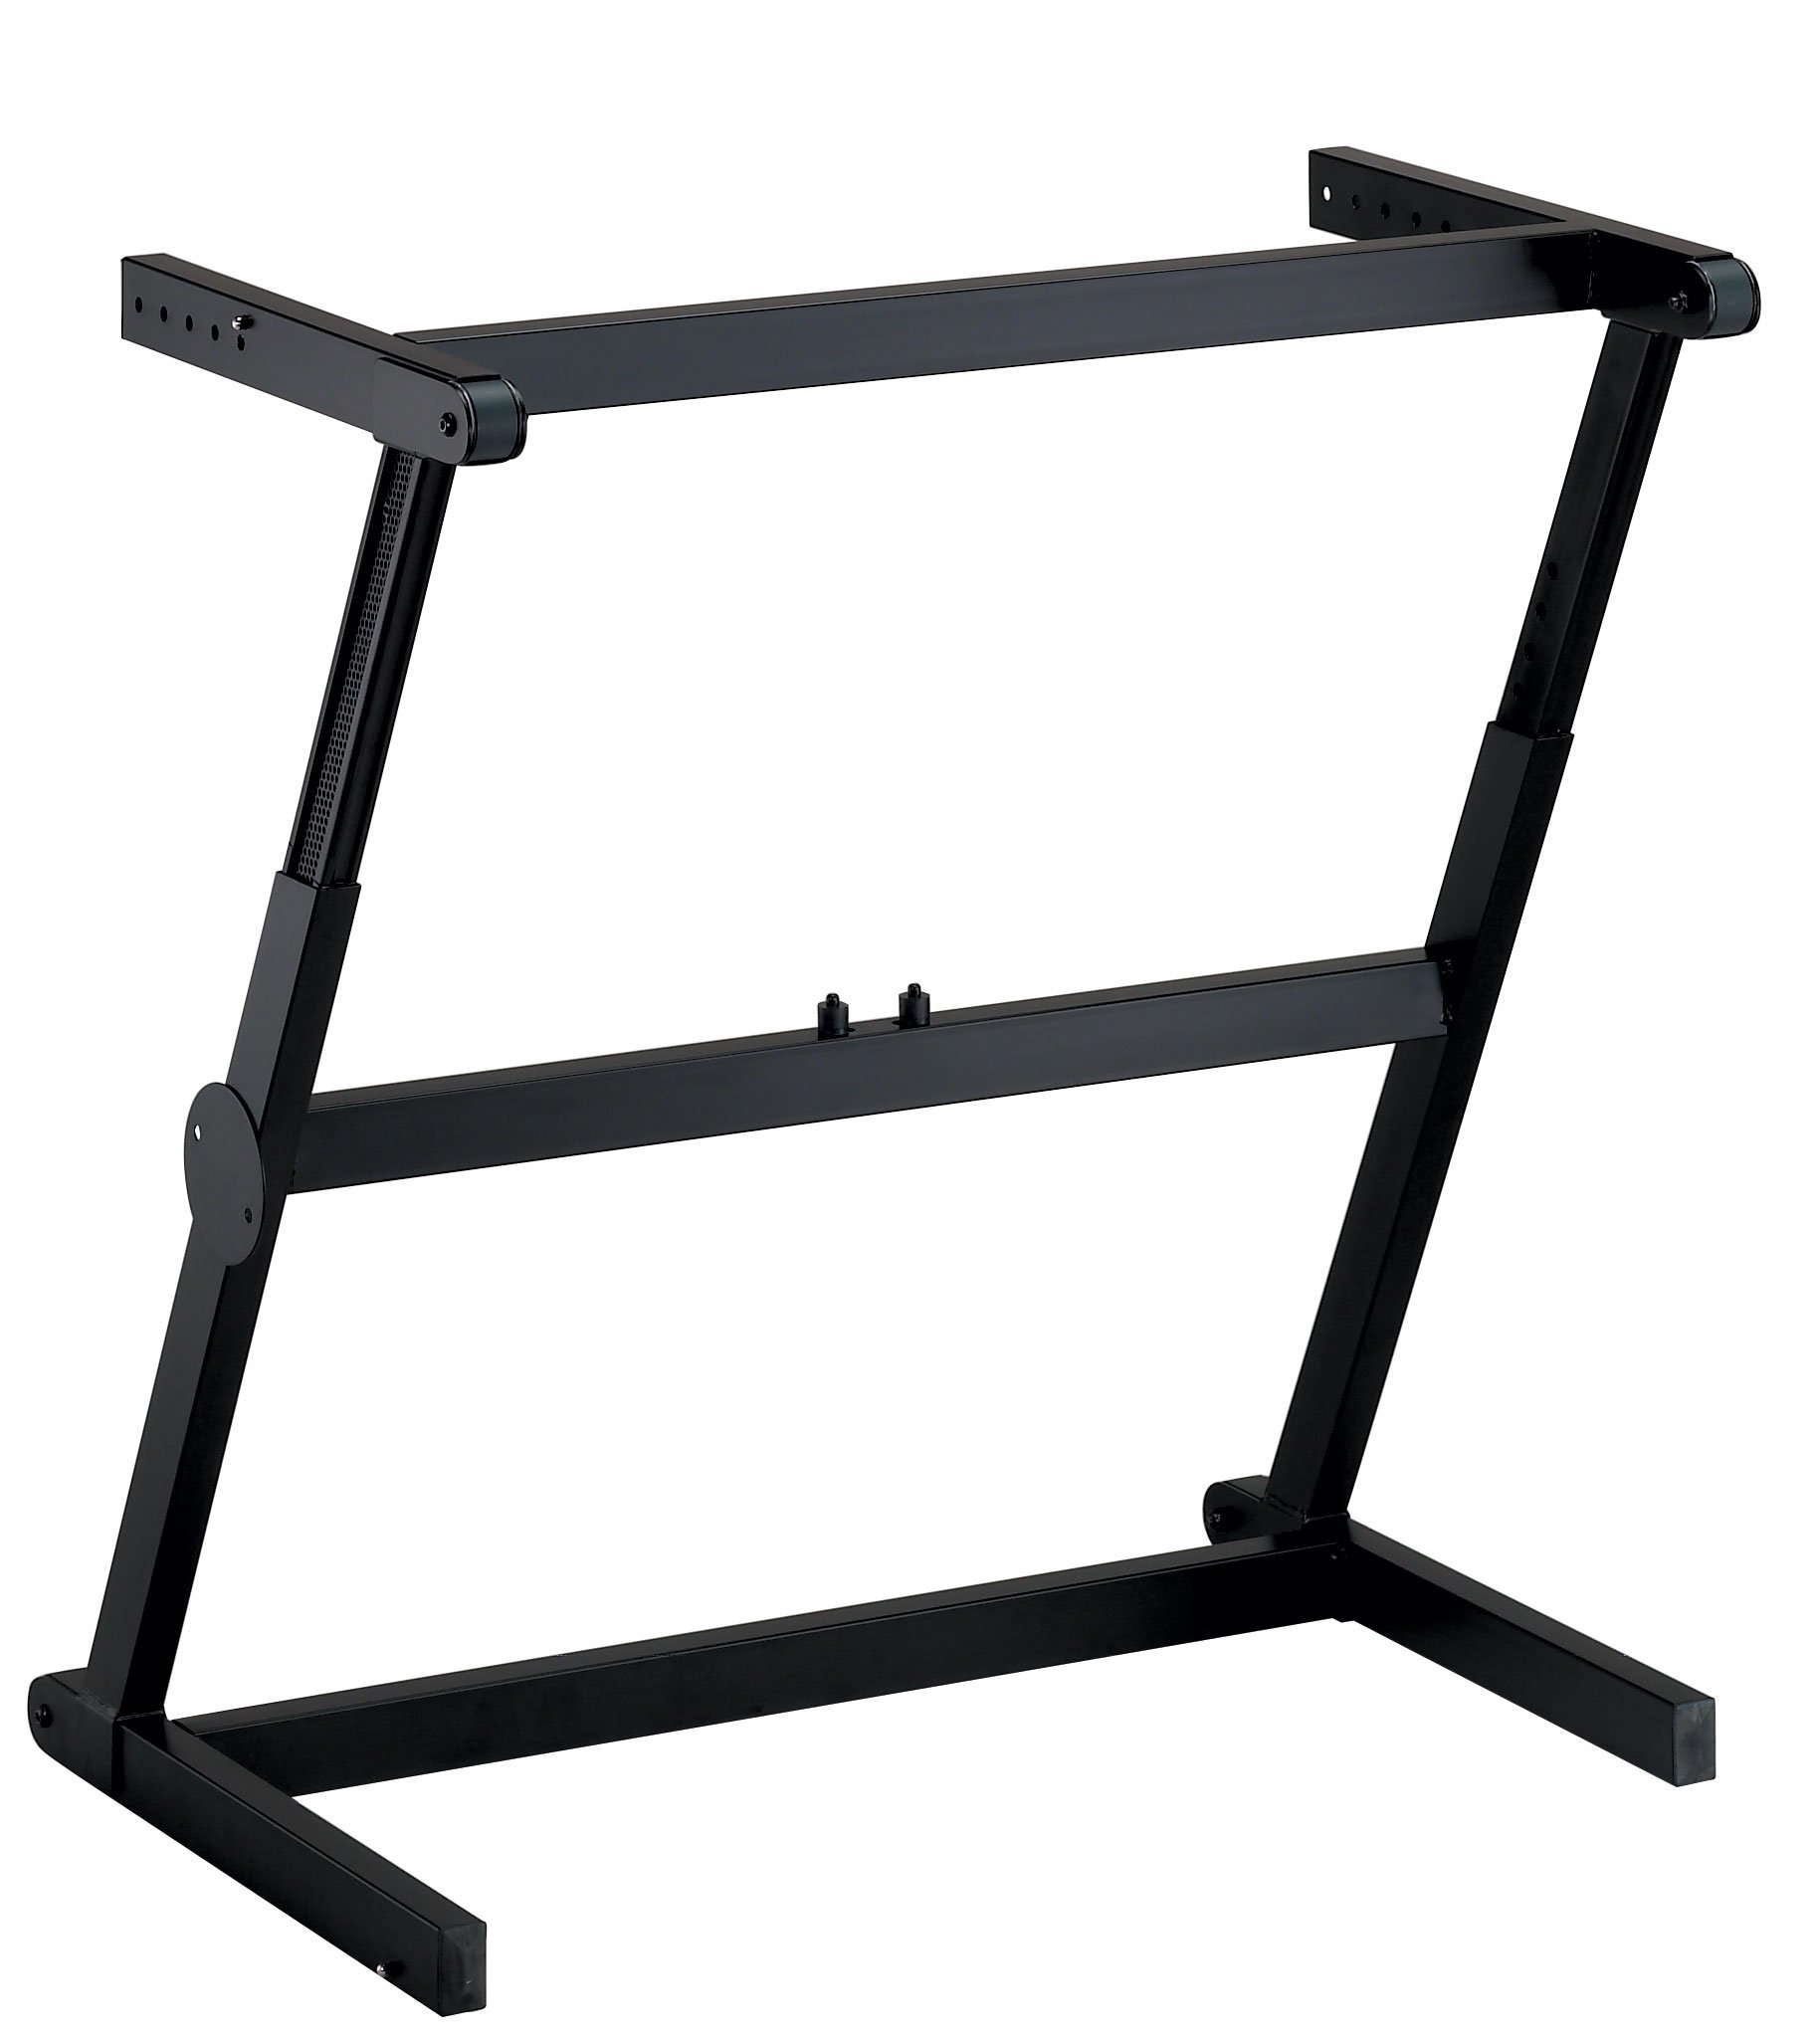 Quik Lok Z-71BK Keyboard stands and displays